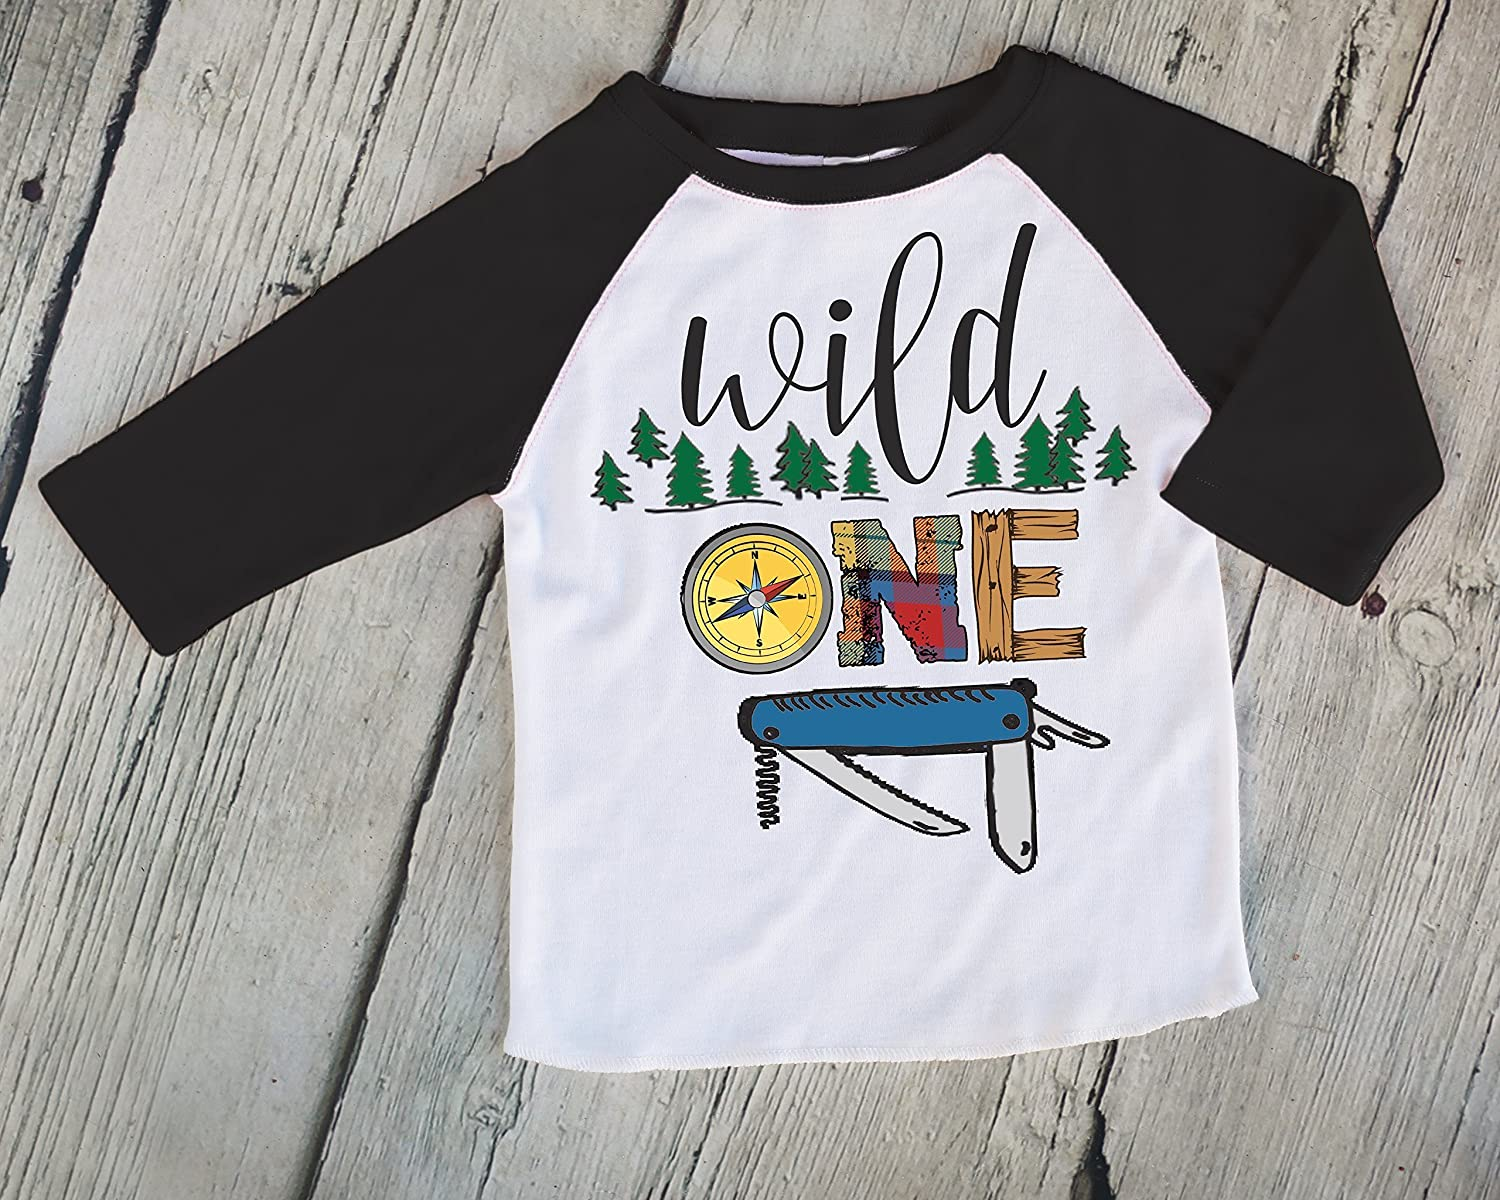 Wild One Boys Outdoorsy Black Raglan Shirt, Cute Boys Shirt, Boys First Birthday Shirt, Boys Baseball Shirt, Boys Raglan Tee